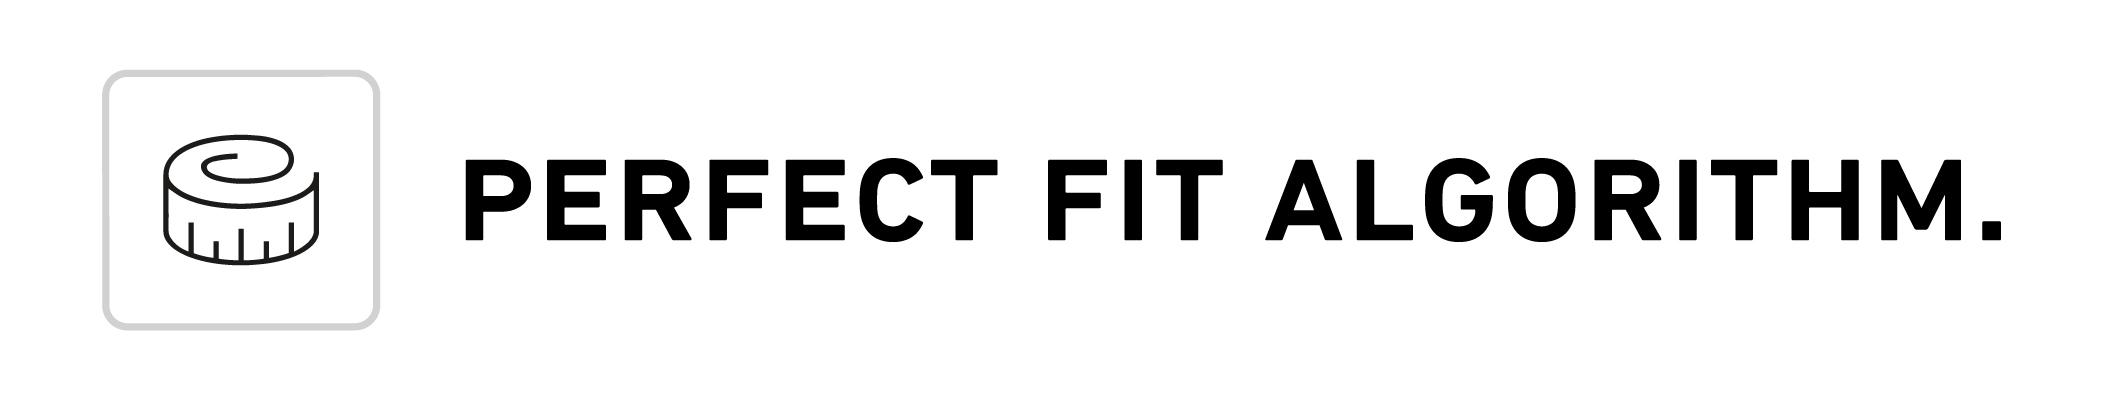 Custom Fit Apparel - Made-to-order Bespoke Apparel Perfect Fit Algorithm